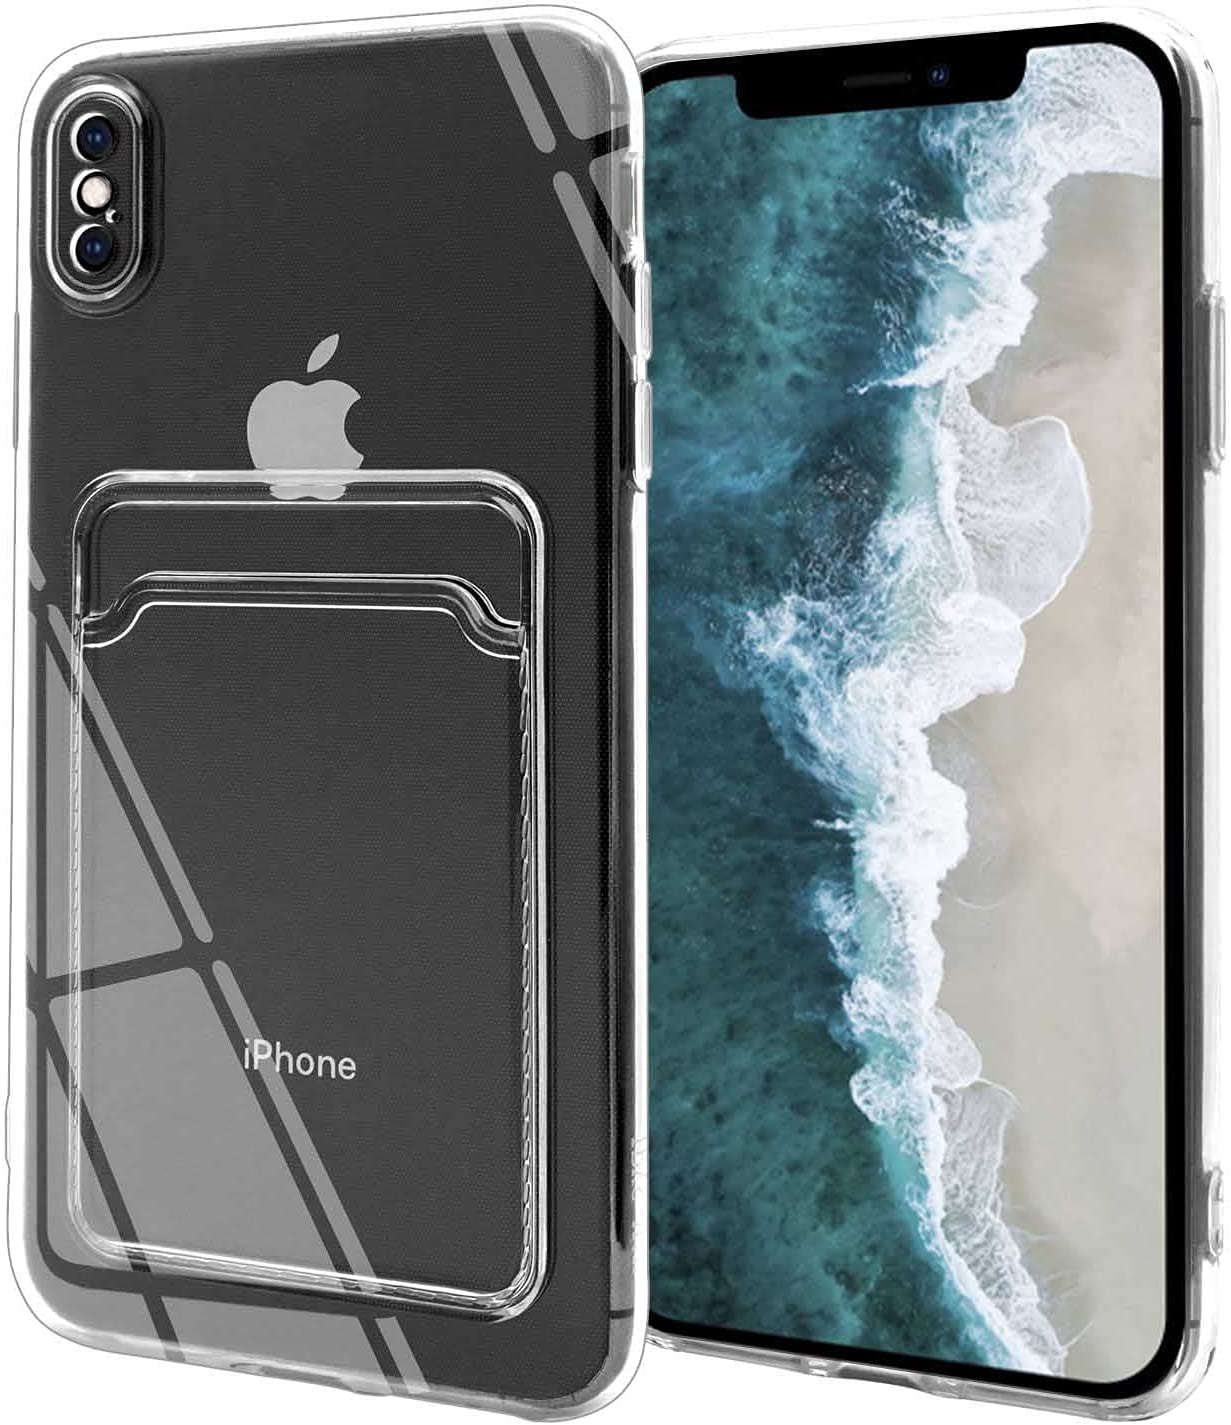 Fsoole Clear Card Case Compatible with iPhone Xs Max 6.5 Inch, Transparent Credit Card Holder Sleeve Slim Fit Ultra Thin Shockproof Cover